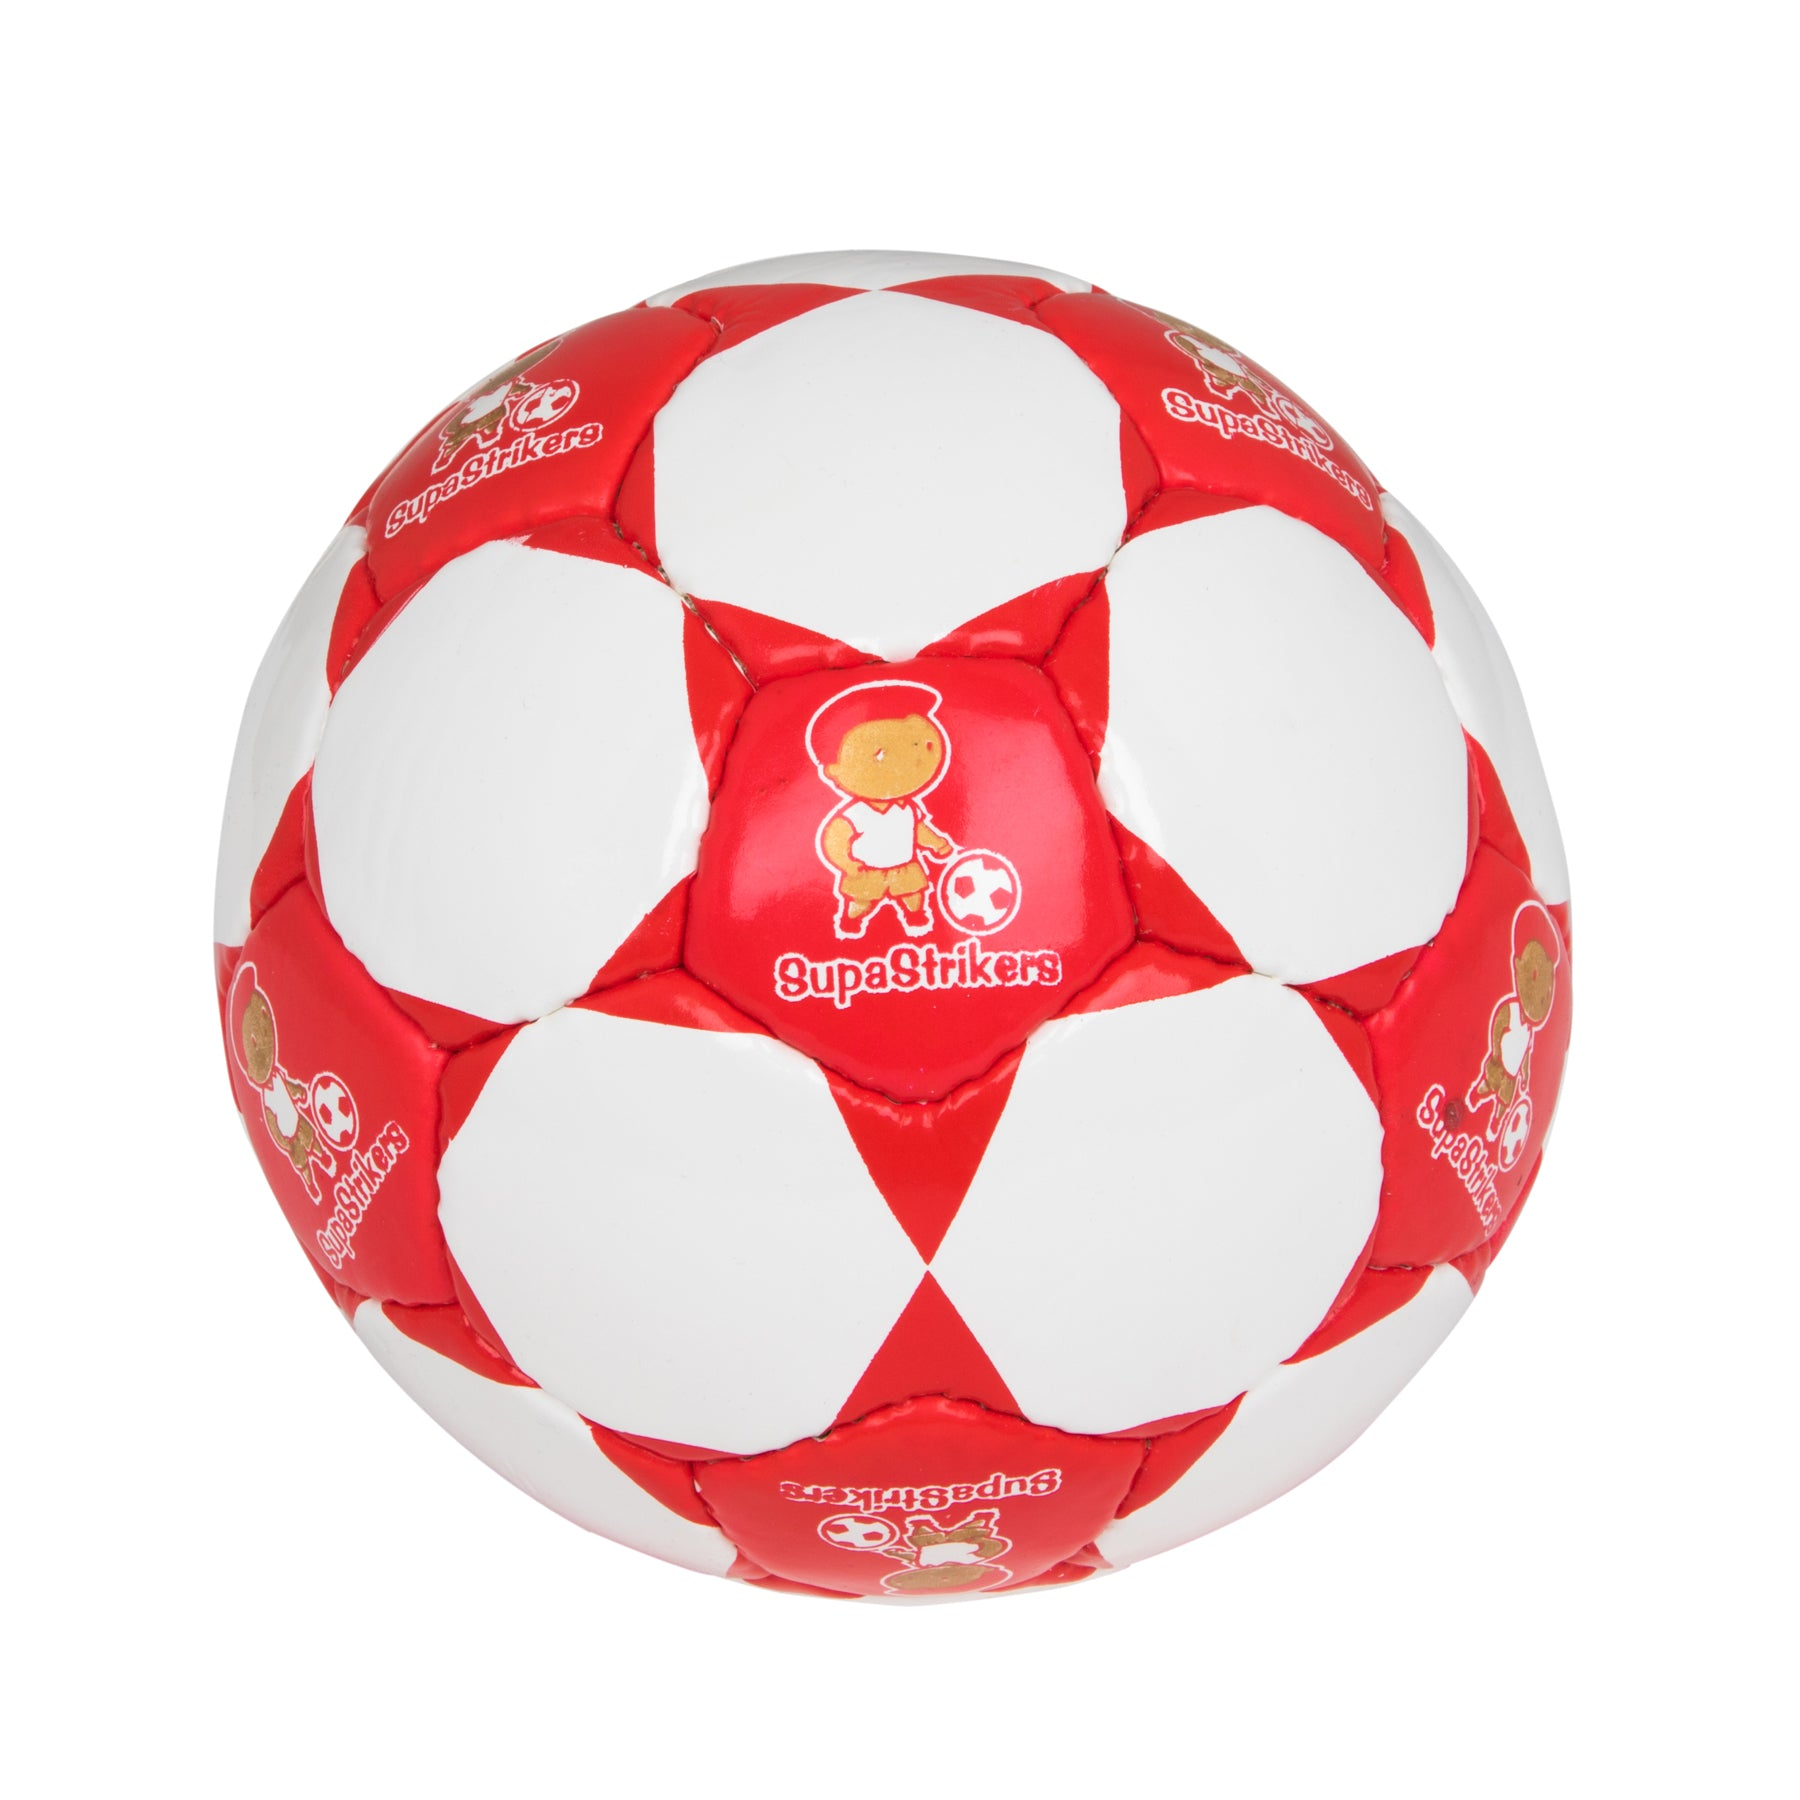 Mini football for pre-school